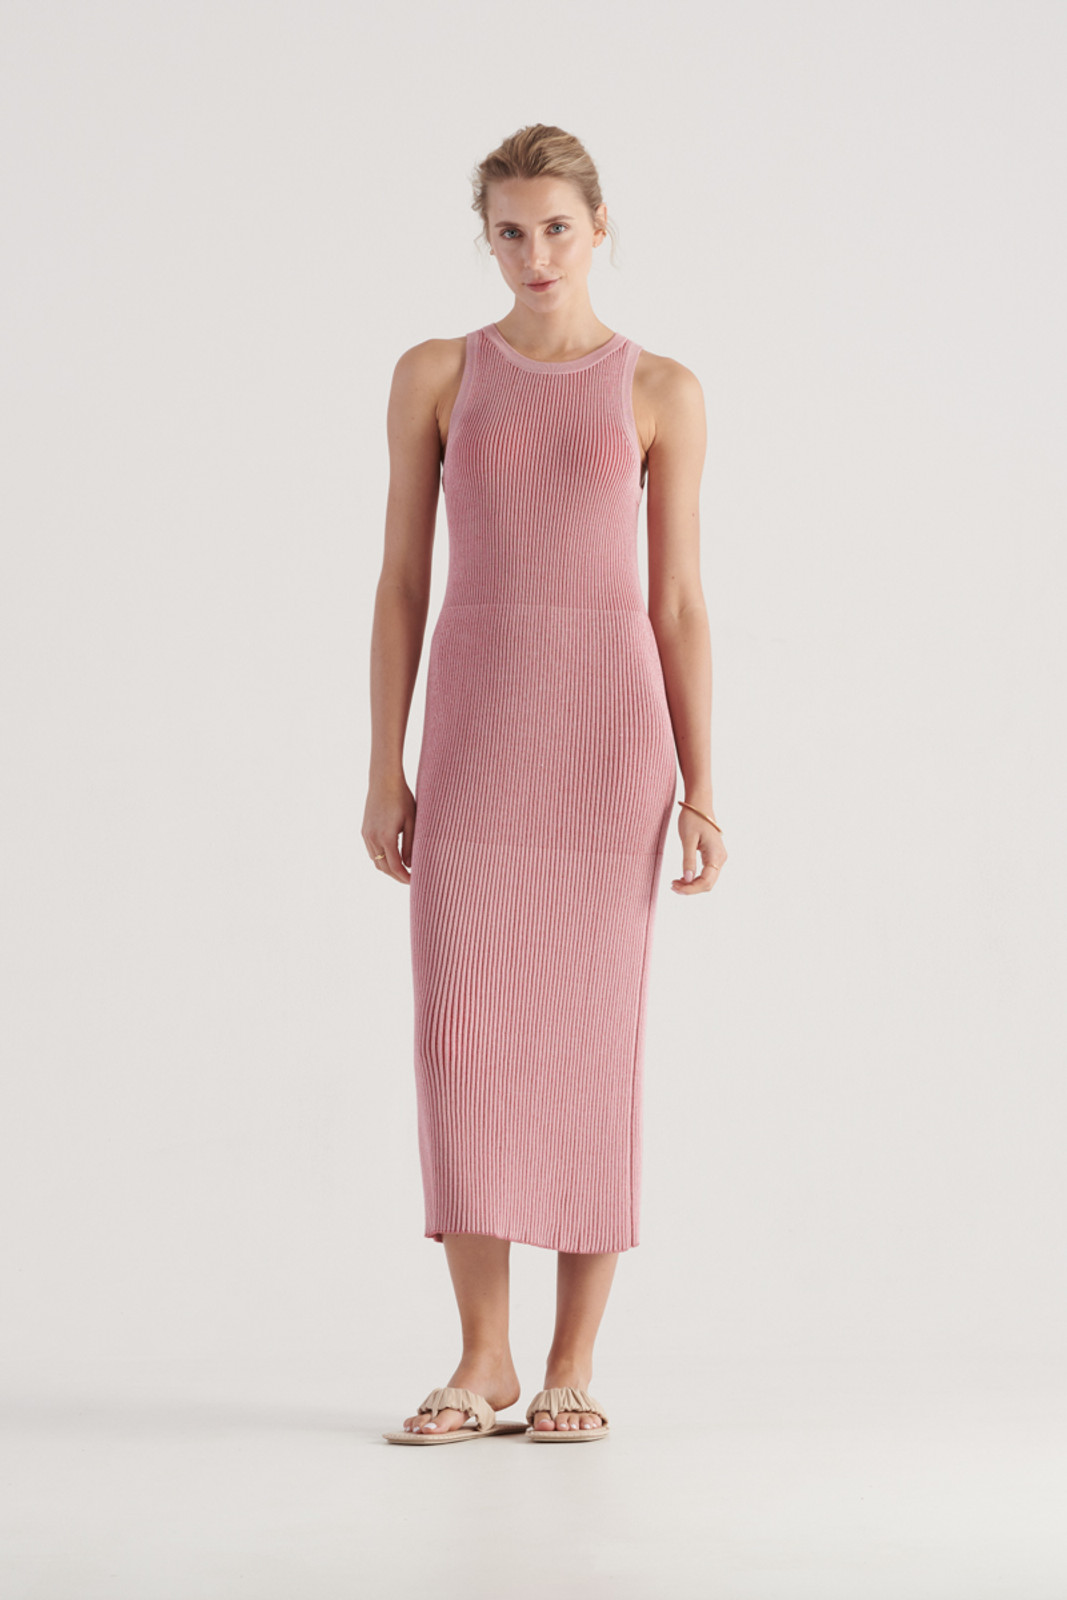 Elka Collective WomensStevie Knit Dress Pink/Red  0